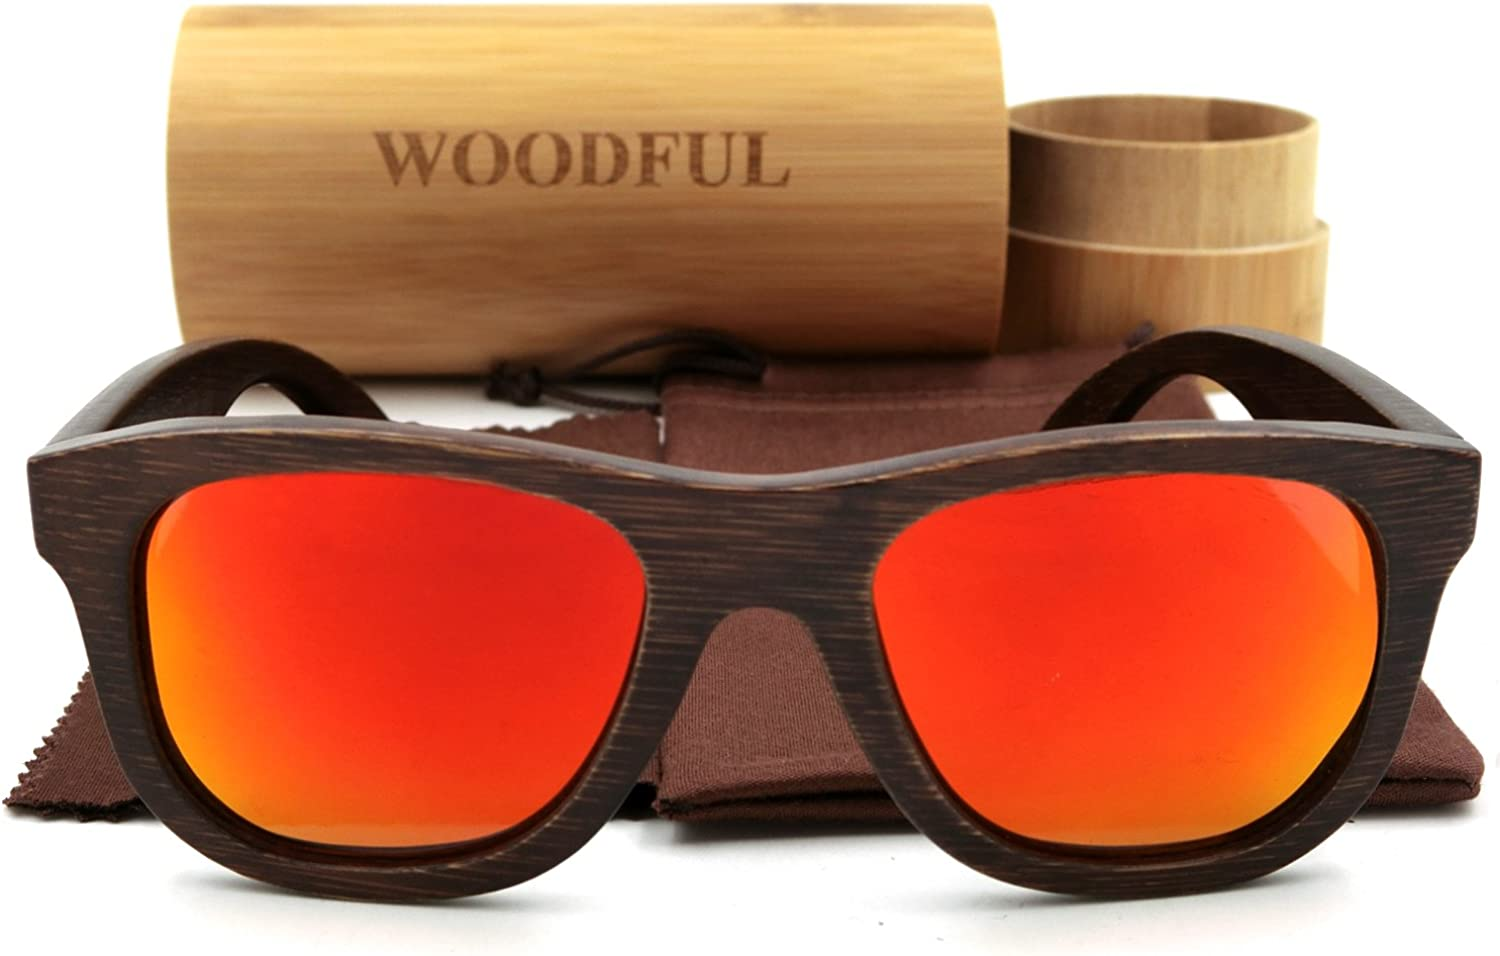 Bamboo Polarized SunglassesBrown color Wooden Glasses with Sunglasses Packaging